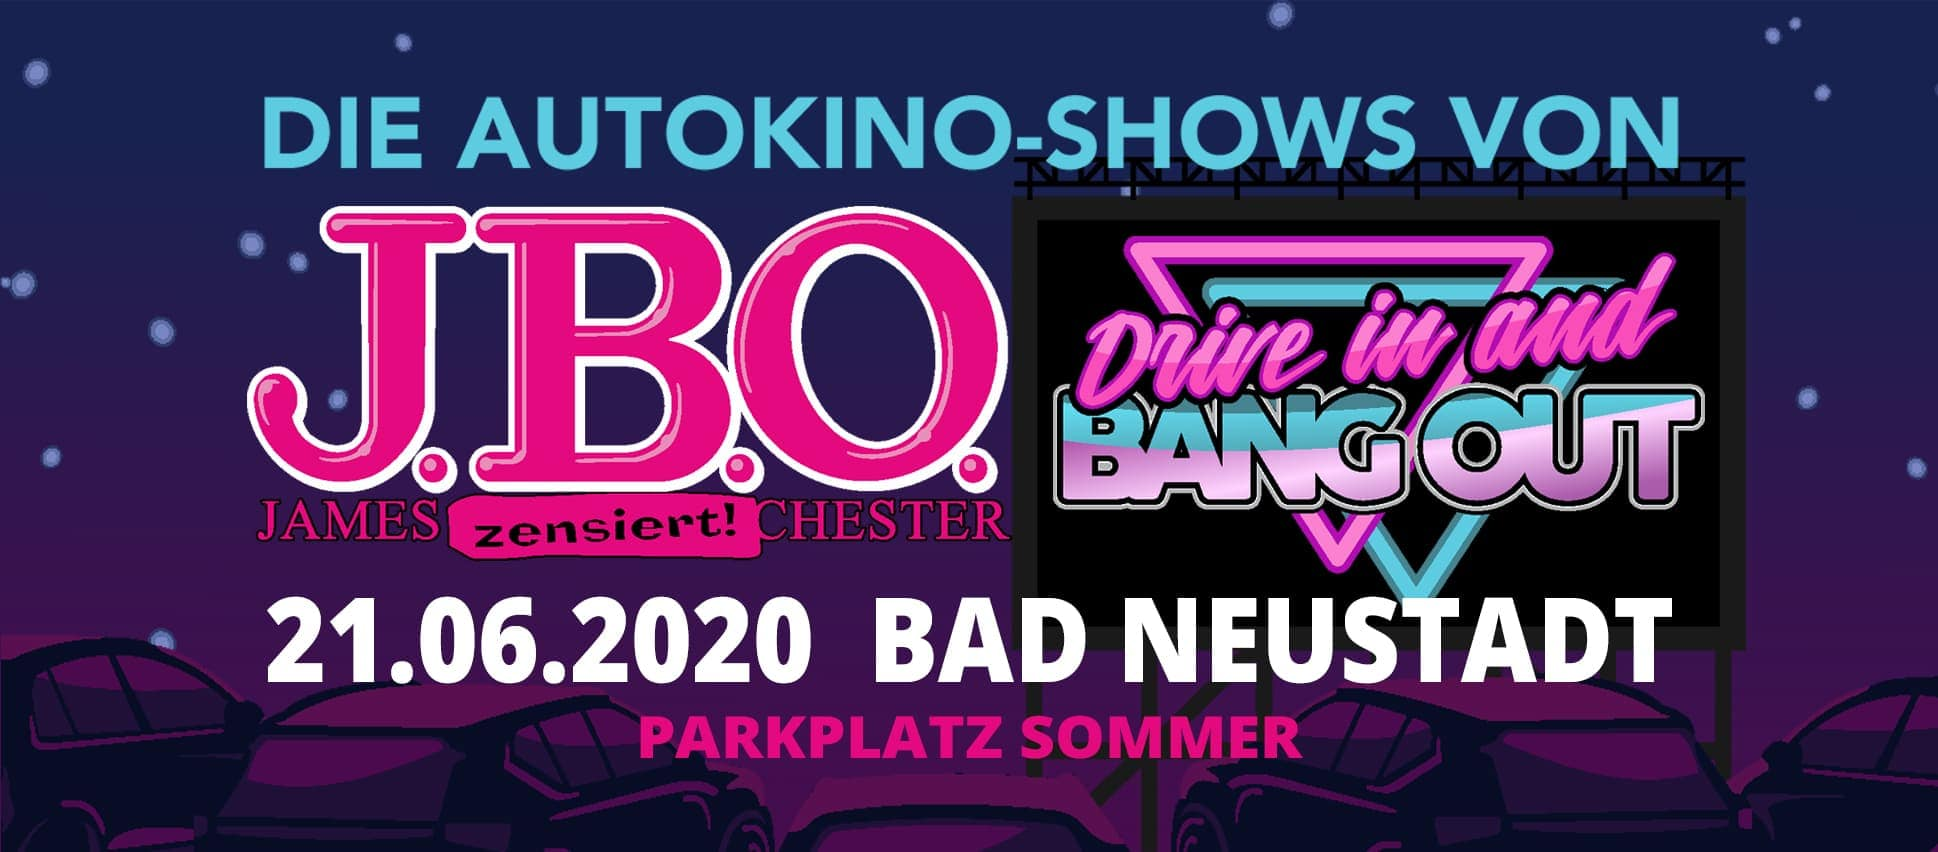 Drive in and Bang out: Sonntag, 21. Juni 2020 - Parkplatz Sommer, Bad Neustadt